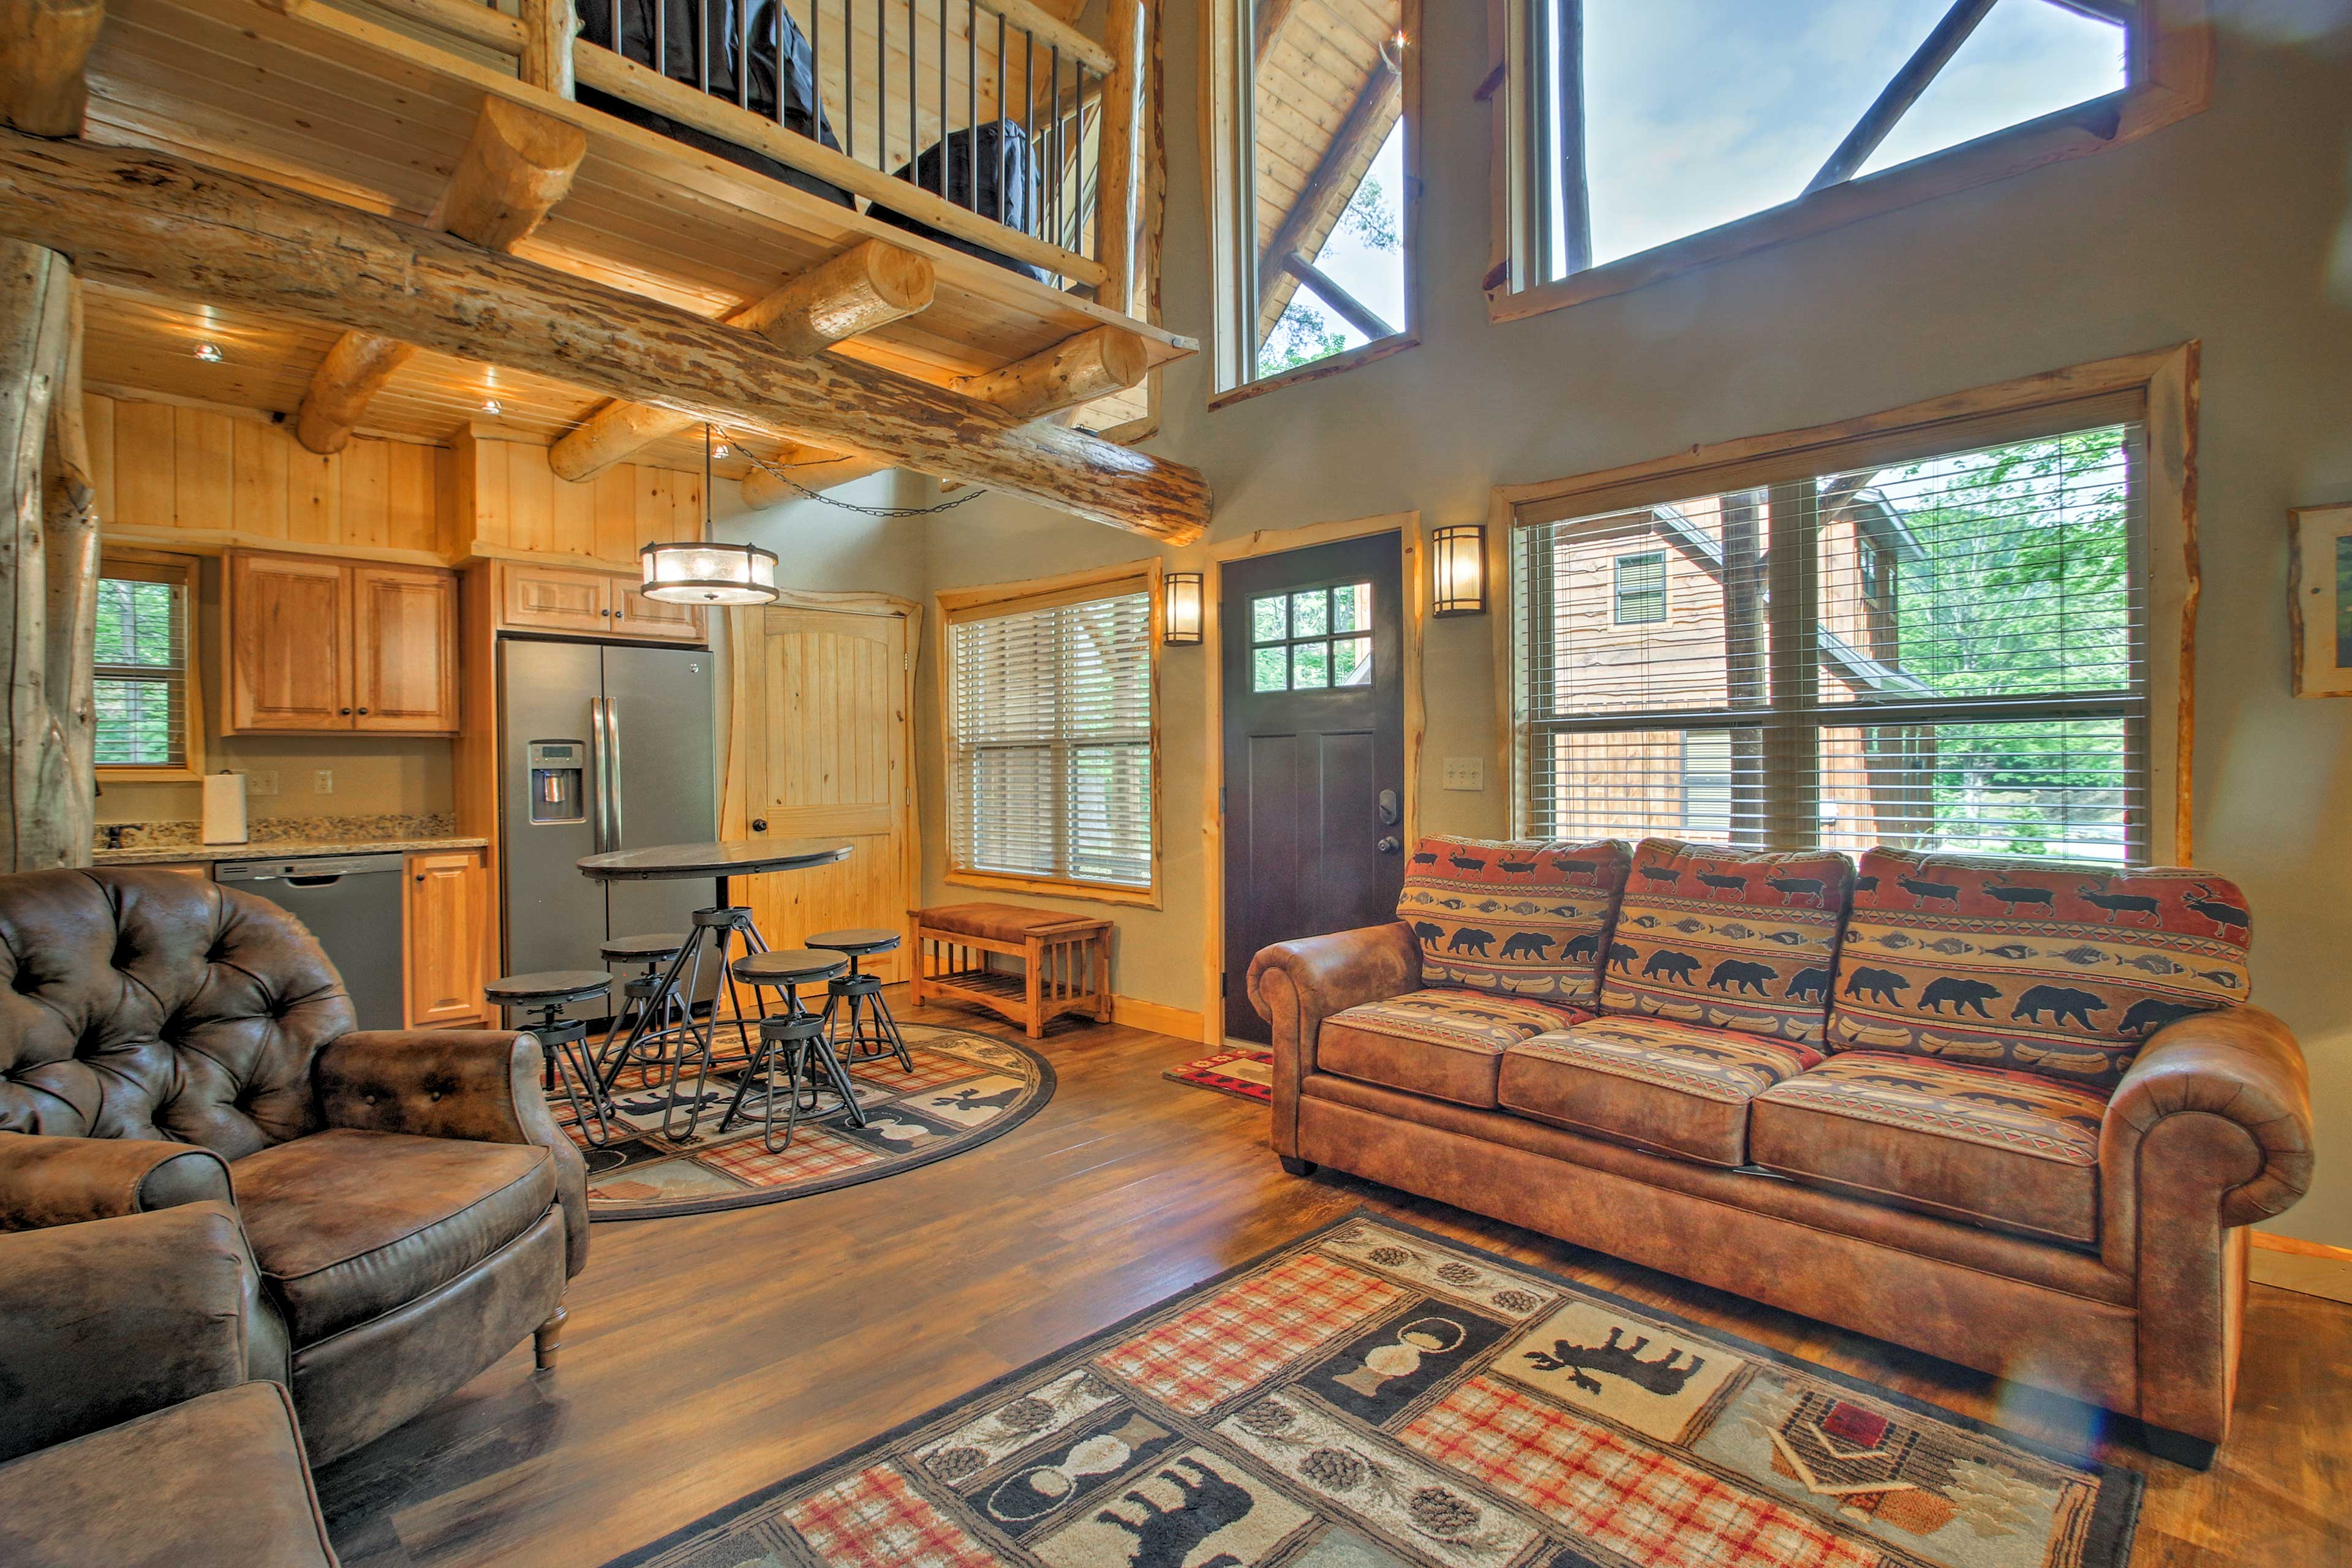 There's ample room in this living room for everyone to relax in comfort!